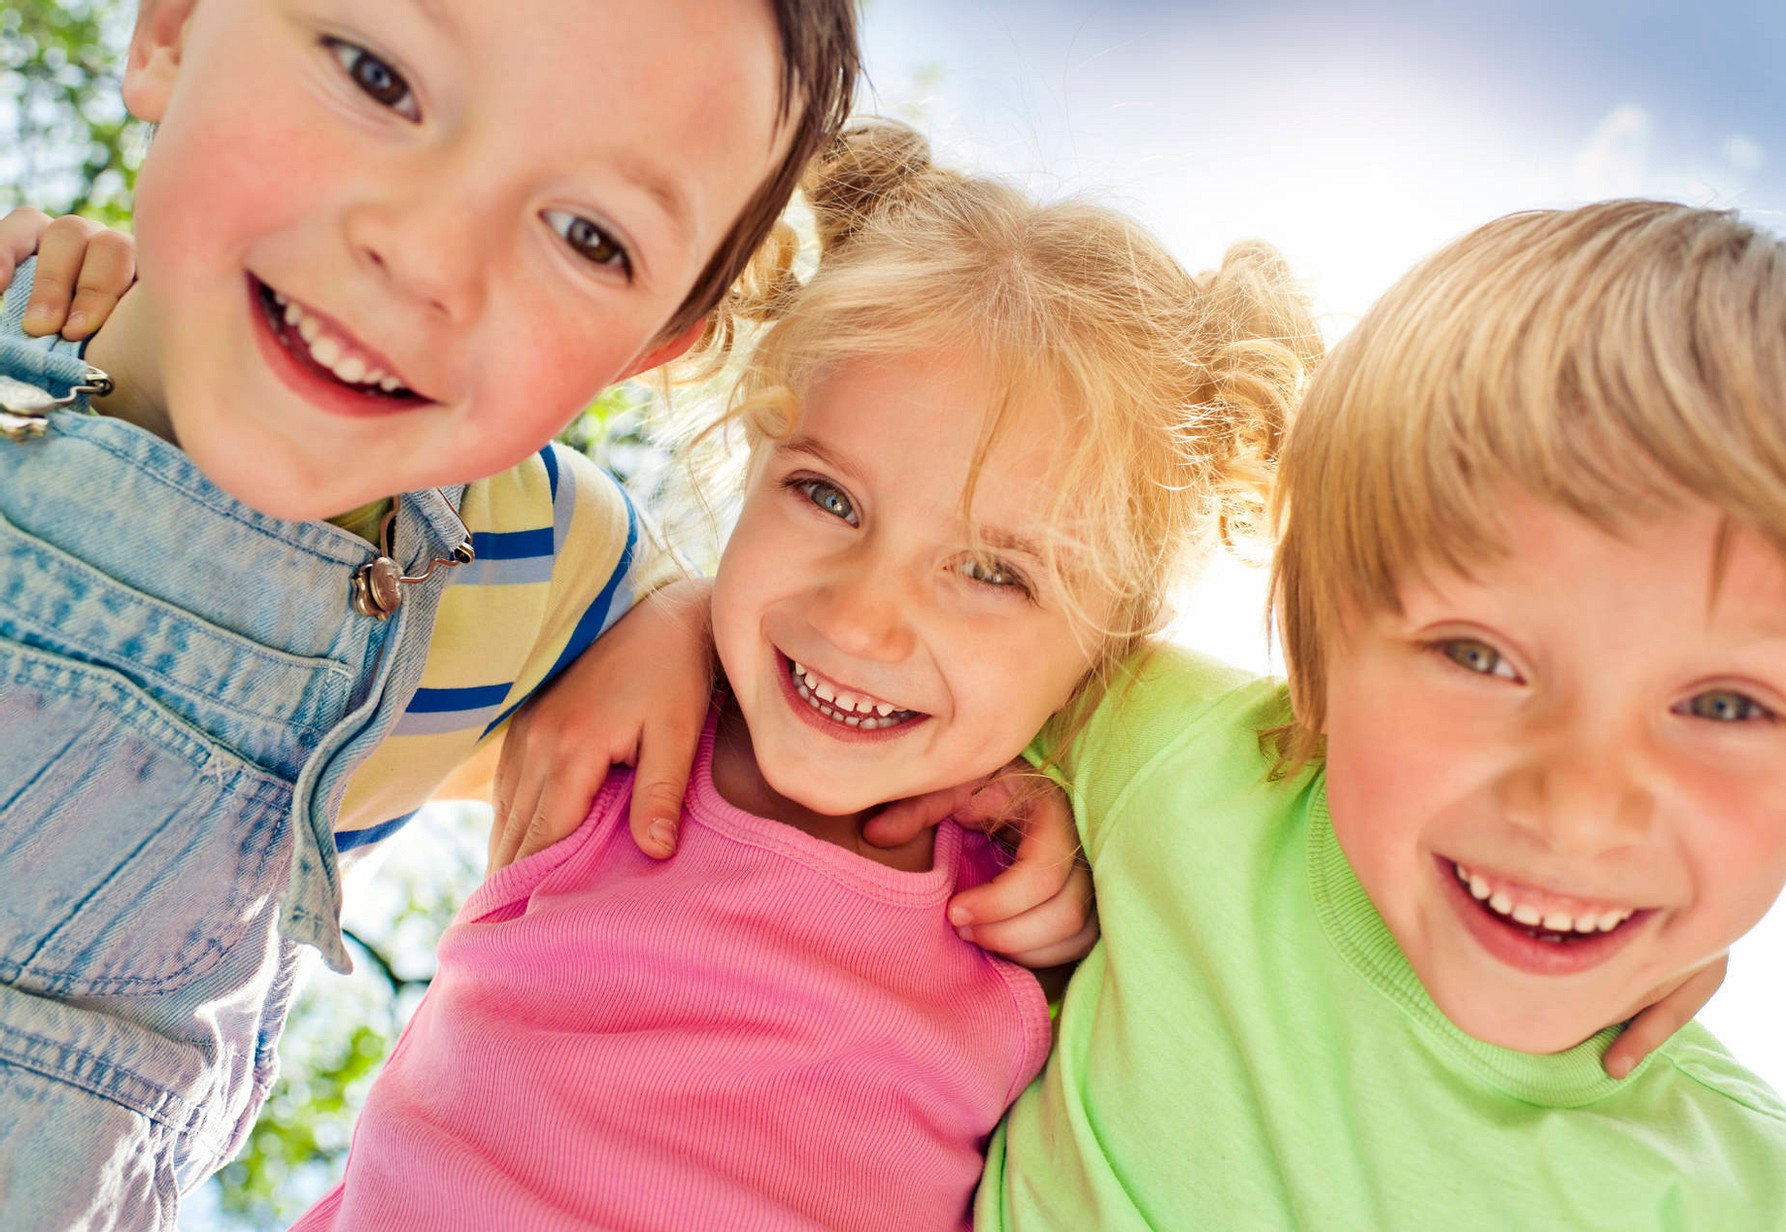 Children's Contact Services Sydney